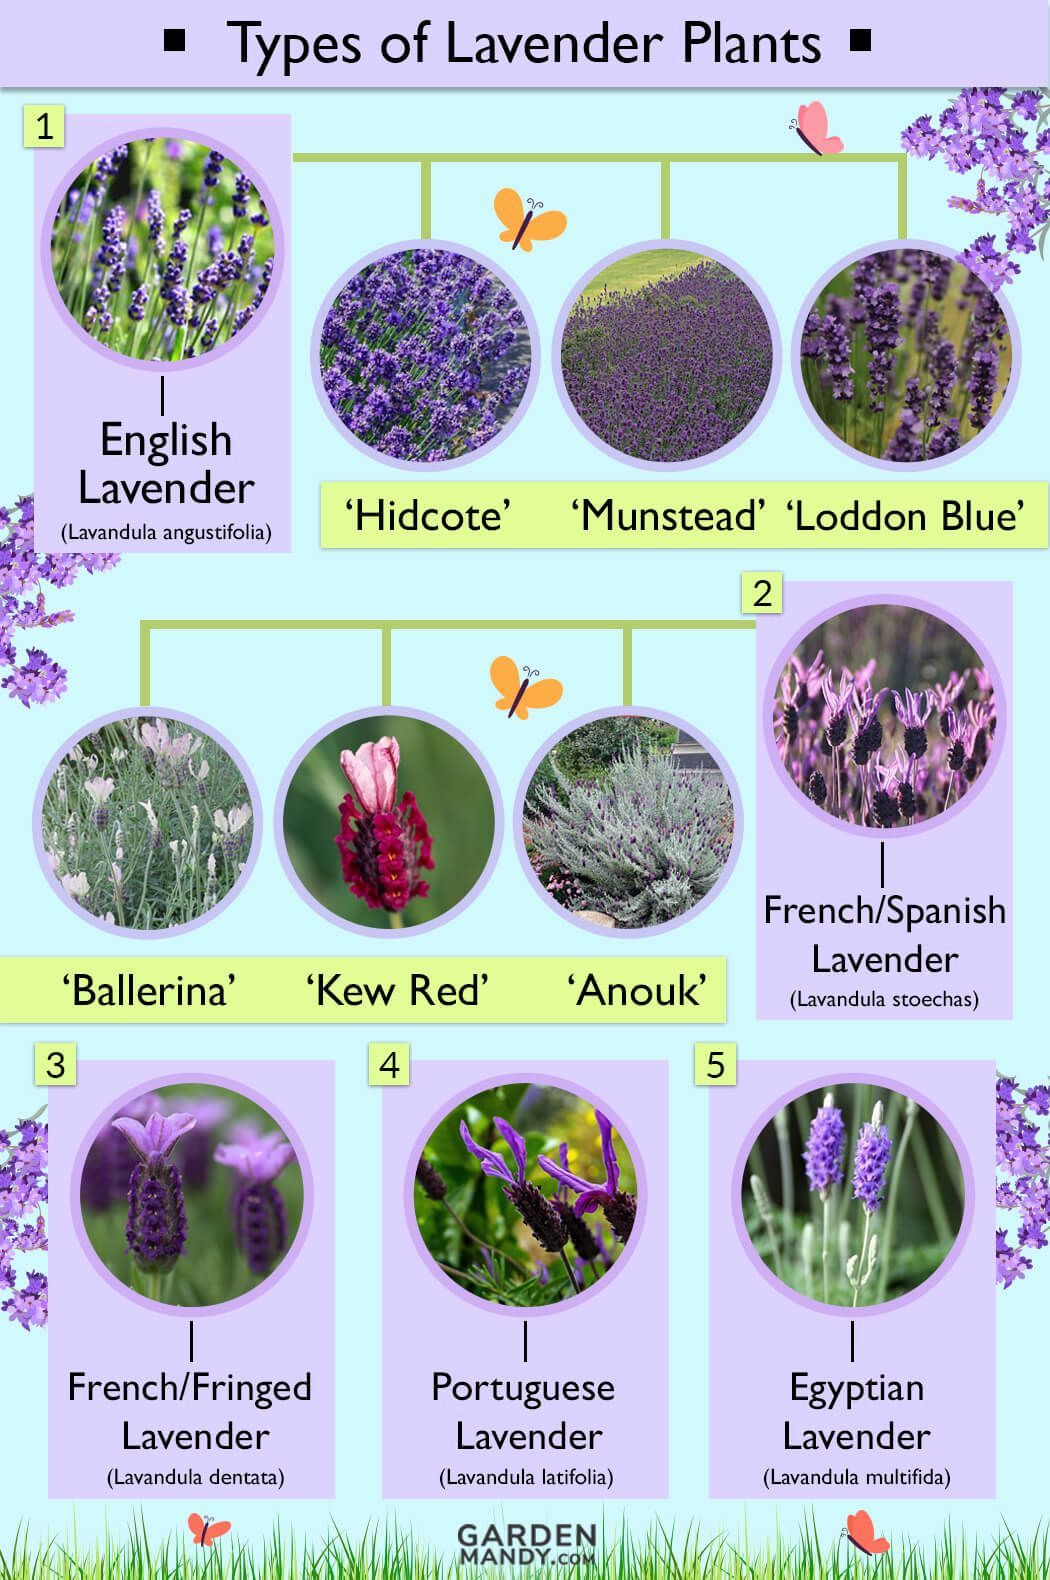 Lavender Plant Types With Names English French Lavender Flower Colors White Lavender P In 2020 Types Of Lavender Plants Lavender Plant French Lavender Plant